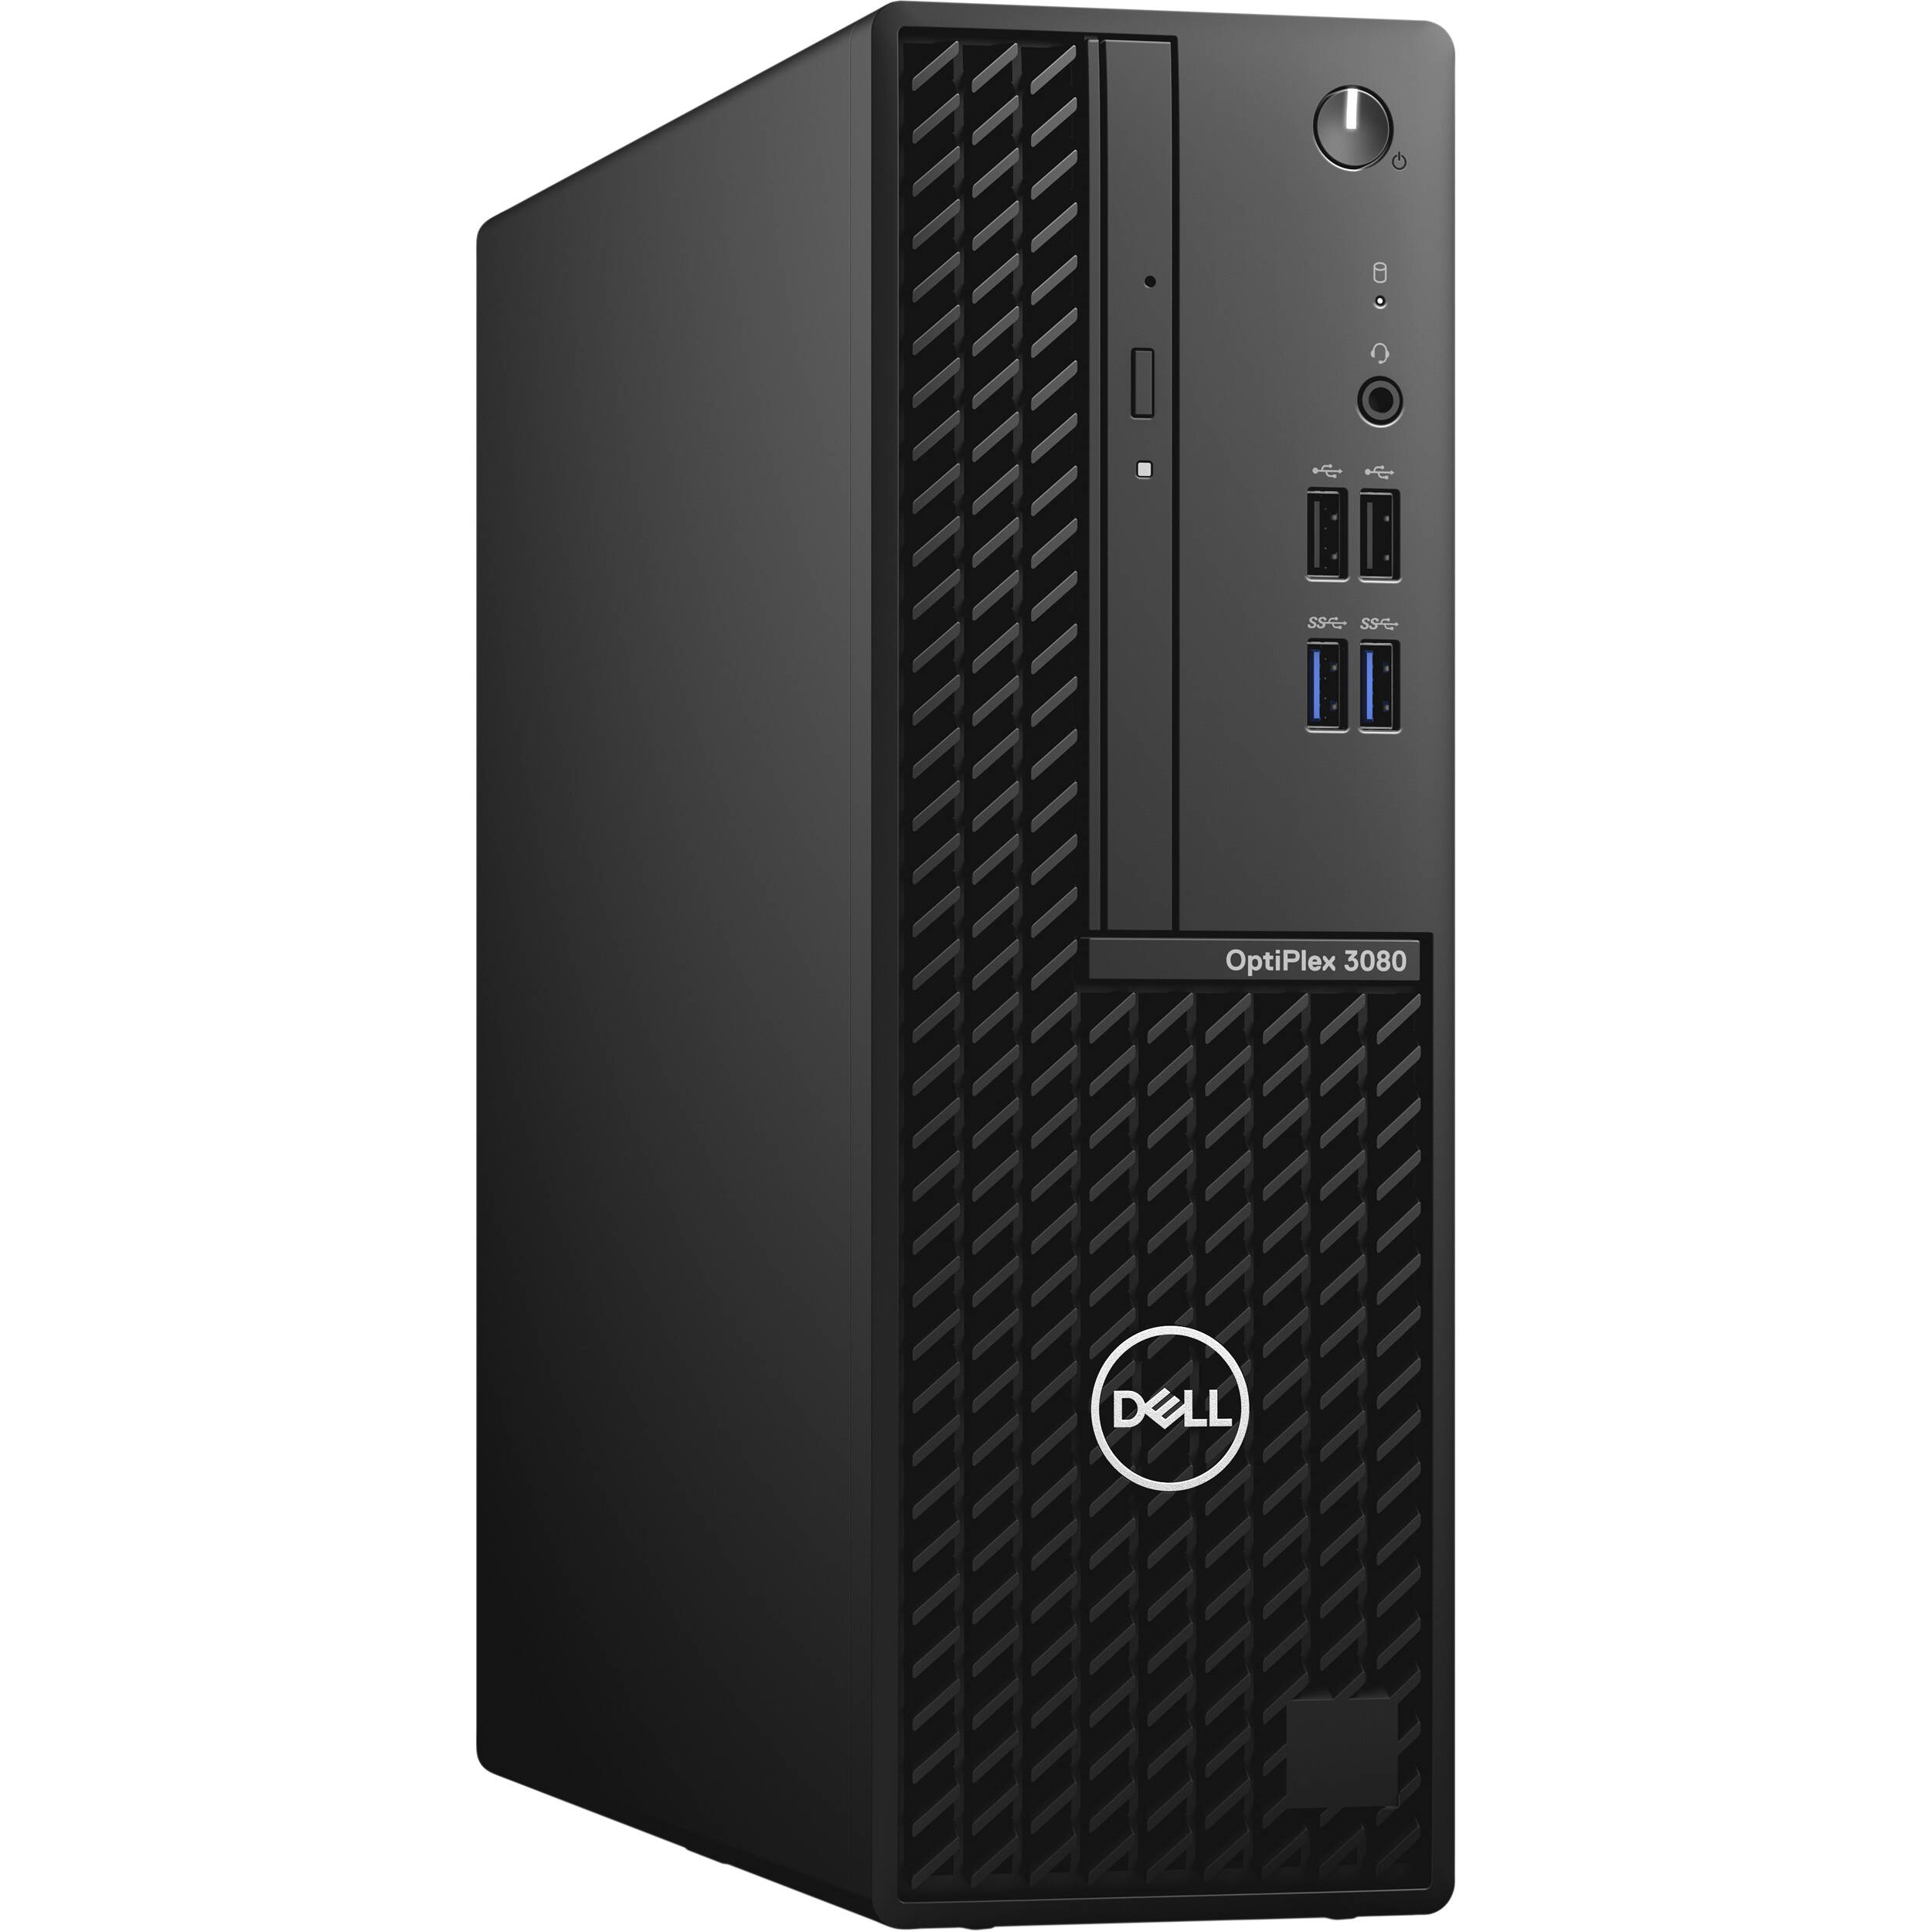 Dell OPTIPLEX 3080SFF Intel® Core i5-10500 (6 Cores / 12MB / 12T / 3.1GHz to 4.5GHz/65W); HDD 1TB 7200 rpm SATA, 4GB 2666 MHz DDR4/Intel HD Graphics 630/DVD_RW/8 External USB: 2 USB 2.0 Type-A, 4 USB 3.2 Gen 1 Type-A, 2 USB 2.0 ports with Smart Power,  1 RJ-45; 1 Display Port 1.4; 1 VGA ; 1 HDMI; 1 UAJ (Universial Audio Jack); 1 Line-out/Fedora/1 year Prosupport